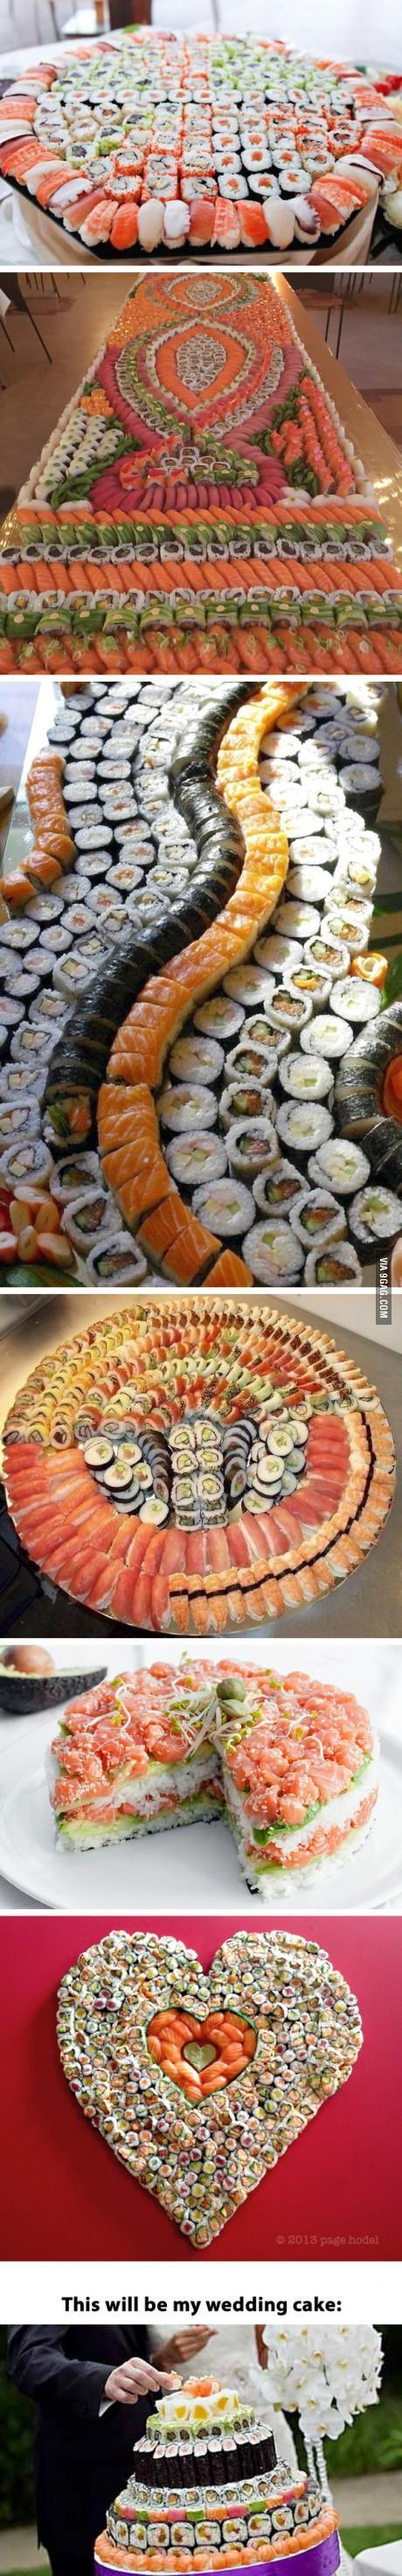 Sushi porn for the crazy sushi lovers (like me)